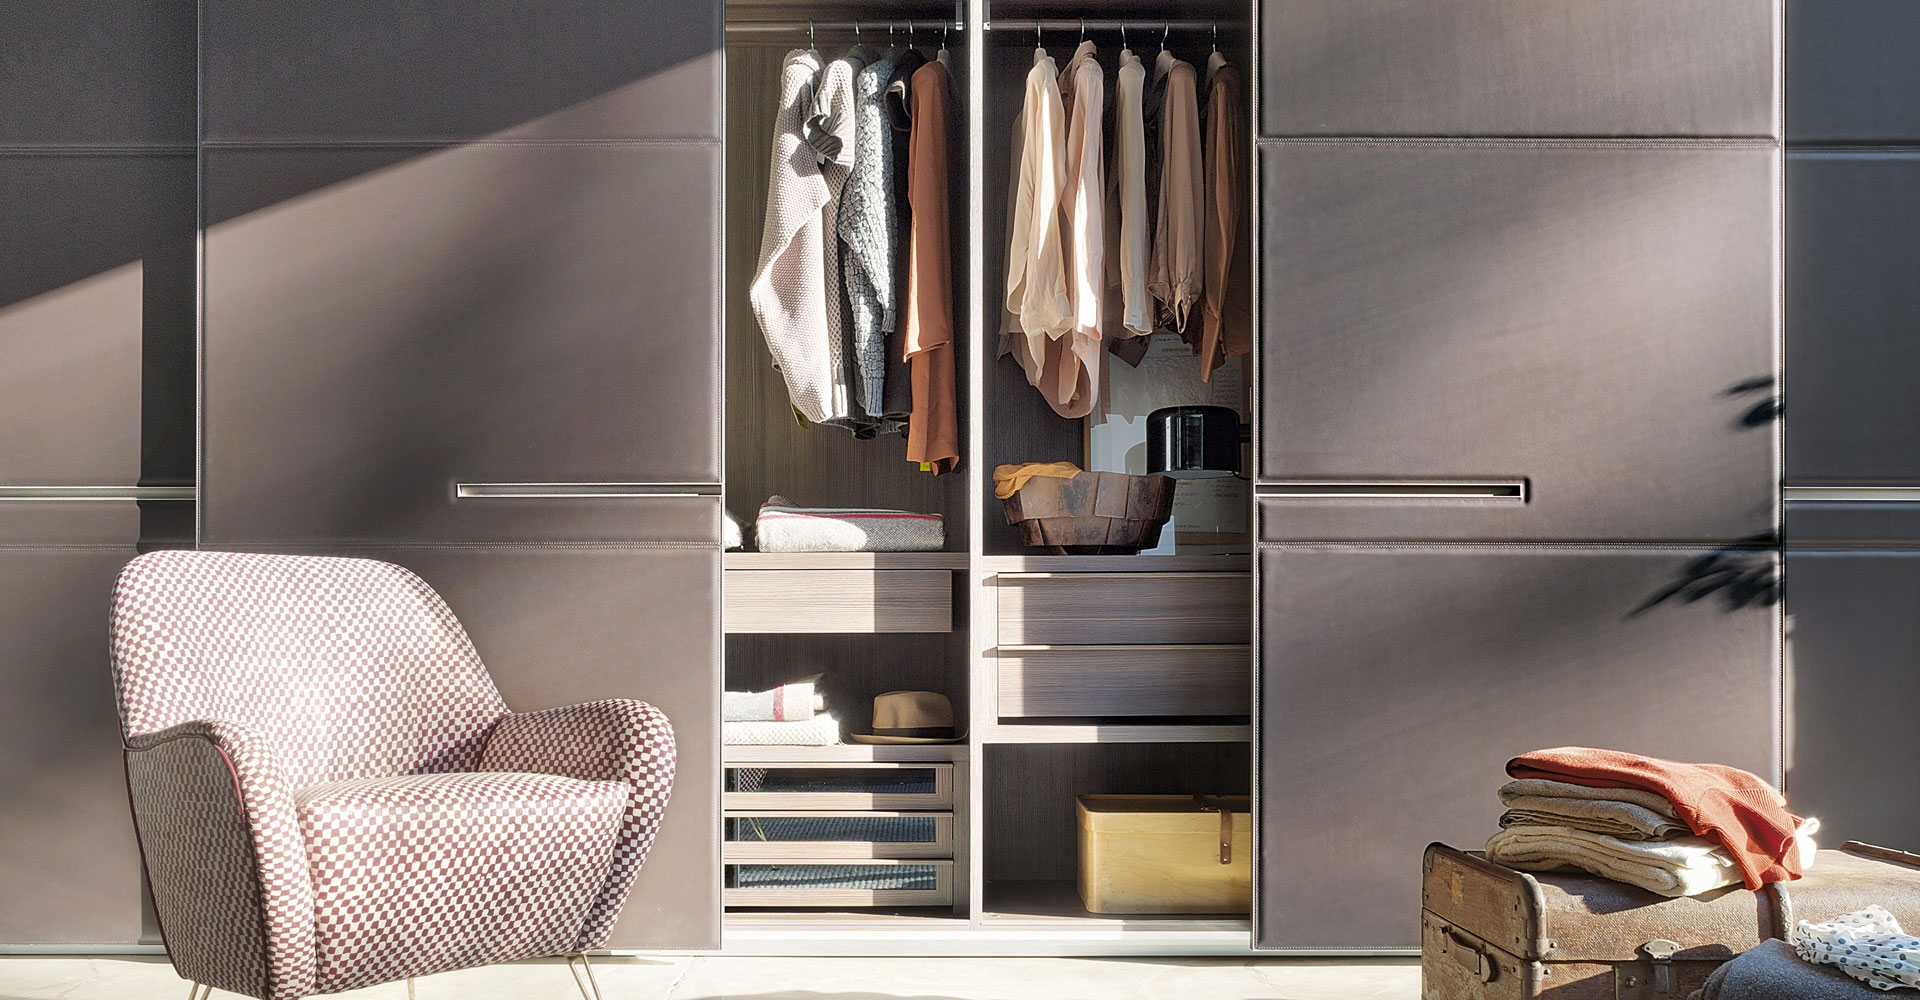 We Offer A Vast Range Of Italian Made Wardrobes From A Selection Of Top  Designer Brands. Our Experienced Team Can Design And Install Any Of Our  Modern ...